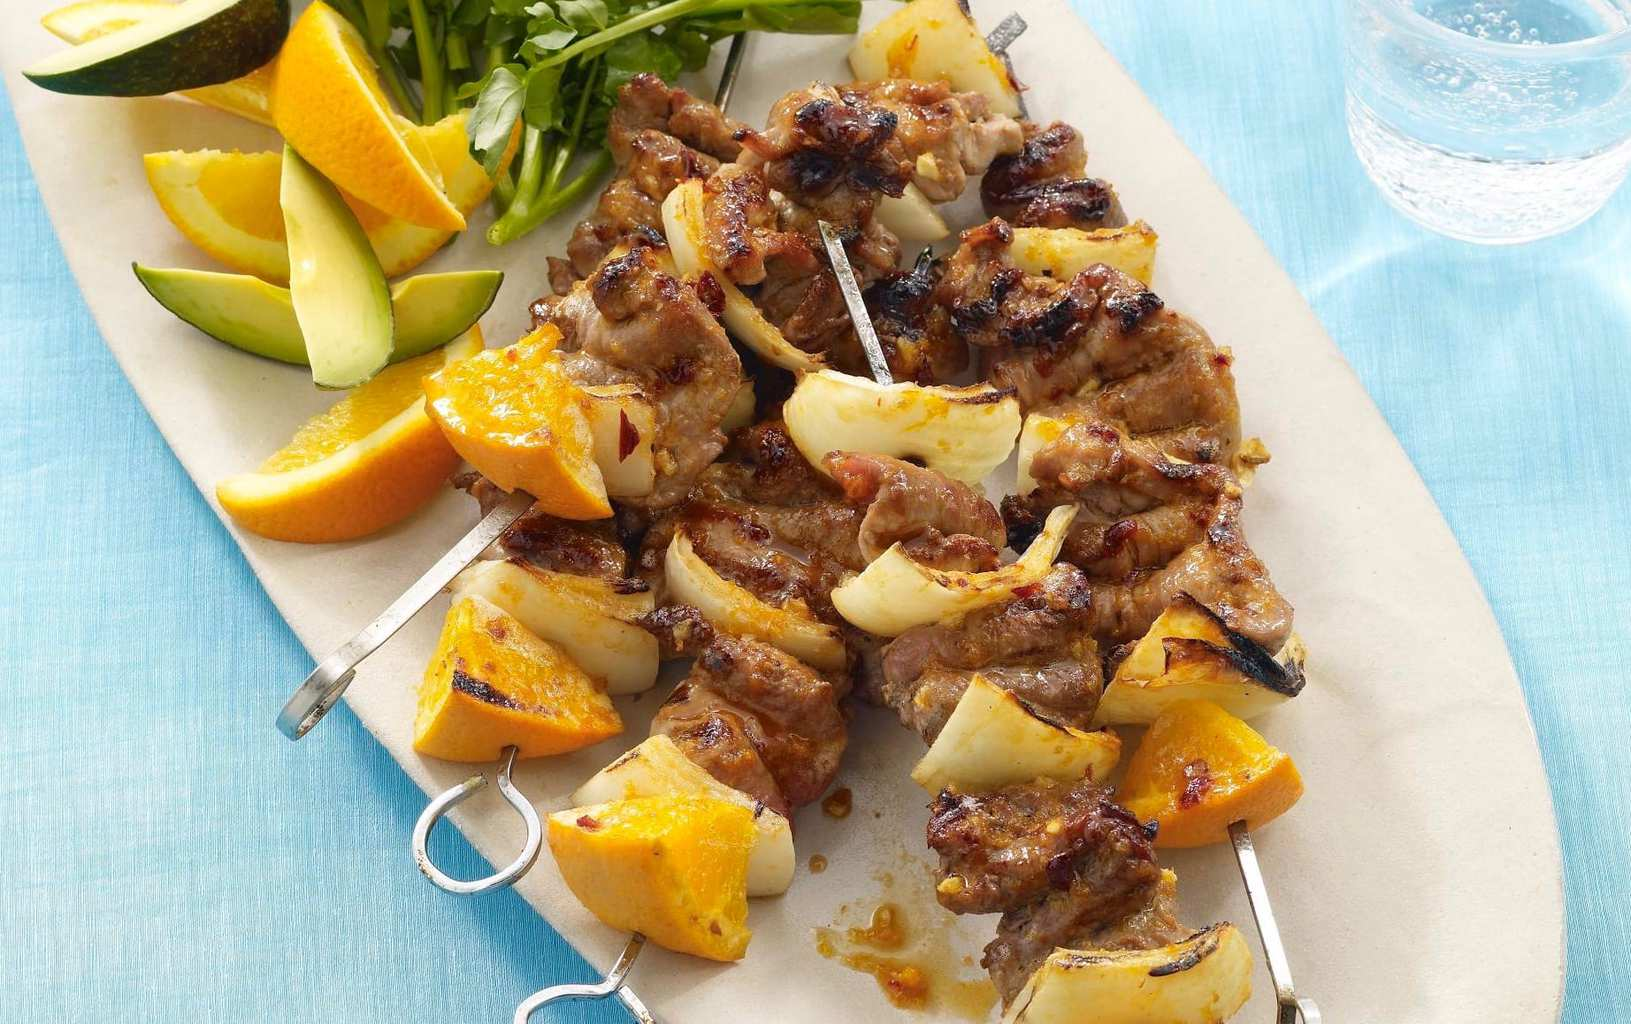 yummy and easy home recipe for grilled pork kabobs and delicious orange chipotle